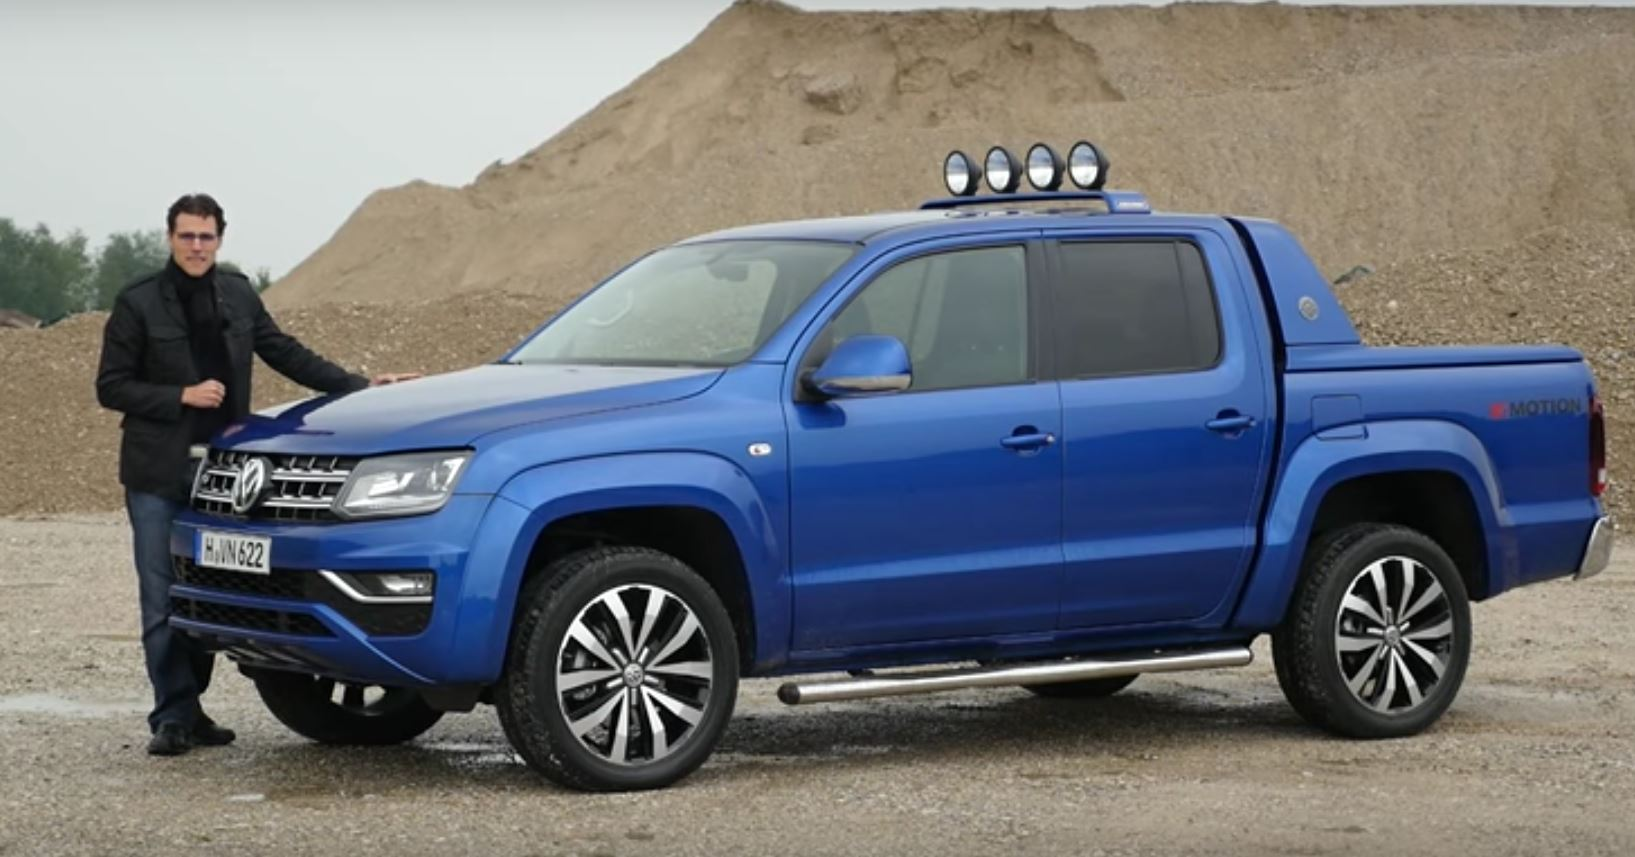 Vw Amarok Modified >> 2017 Volkswagen Amarok 3.0 TDI 224 HP Acceleration Test and Review - autoevolution